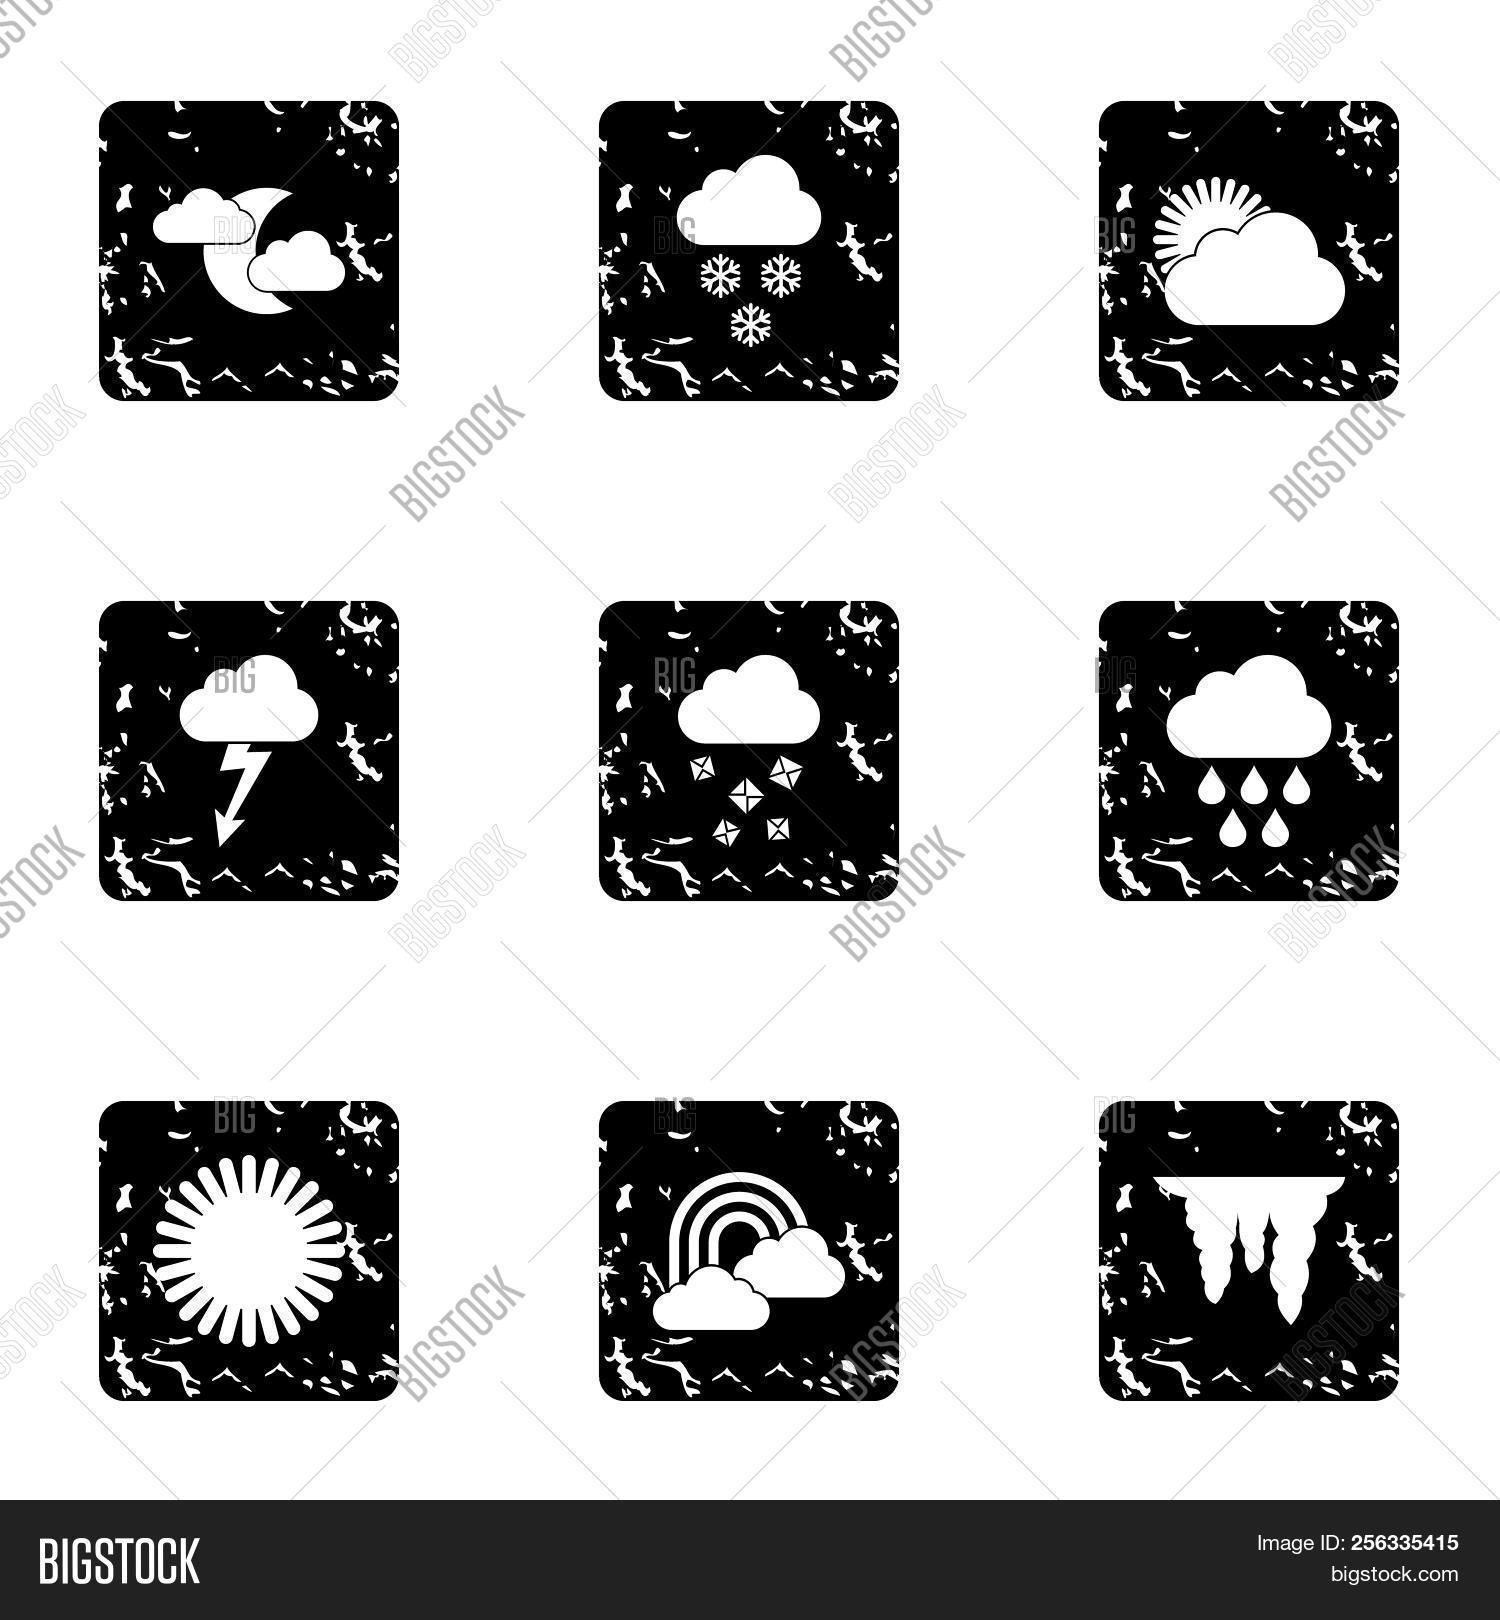 Weather Forecast Icons Image & Photo (Free Trial) | Bigstock